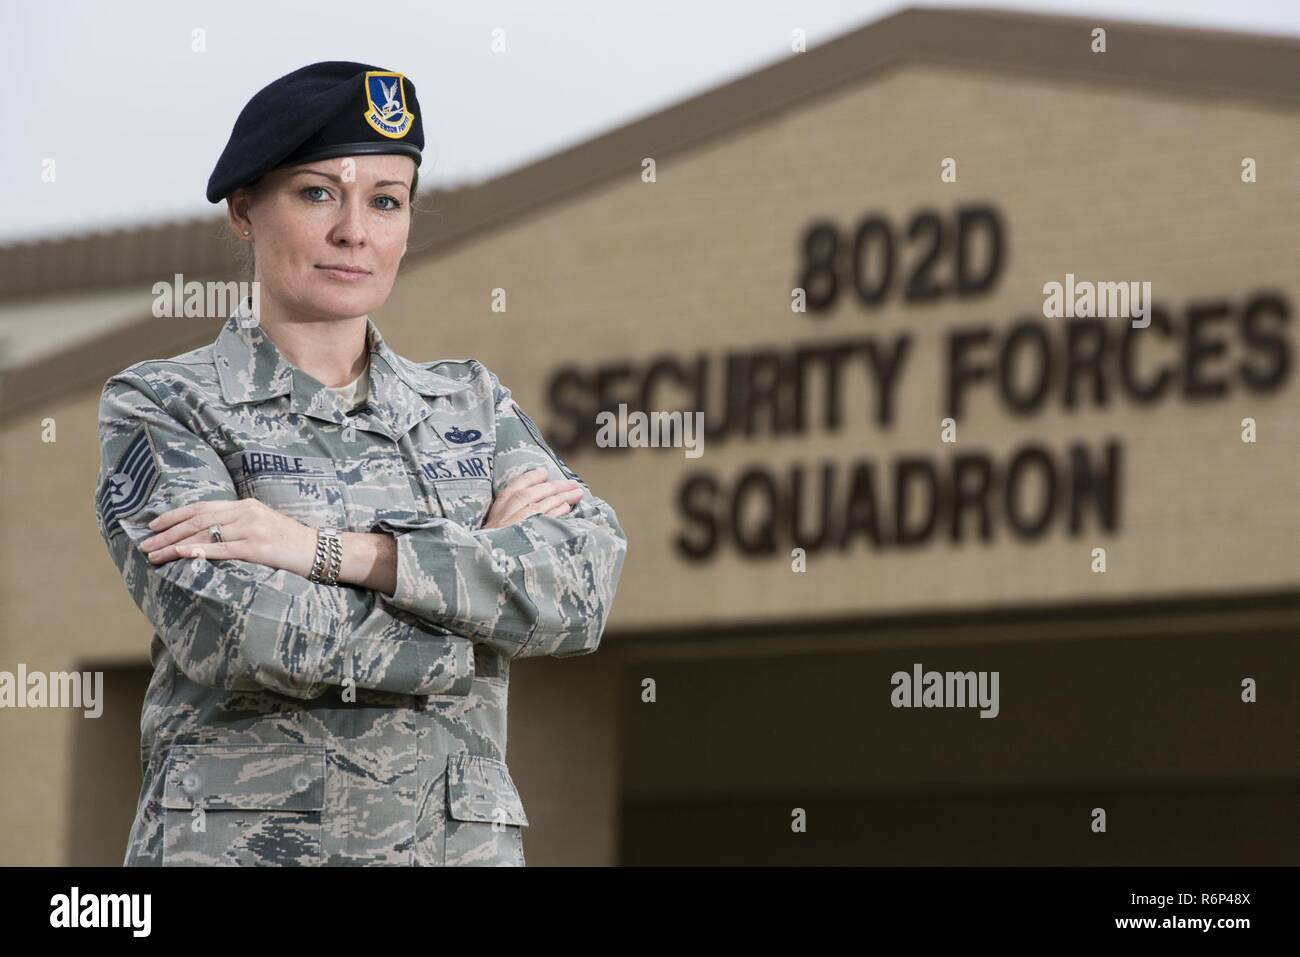 Technical Sgt. Michelle Aberle, 802nd Security Forces Squadron installation security, poses for a photo prior to conducting a security check May 9, 2017, at Joint Base San Antonio-Lackland, Texas.  Aberle and Turner provide force protection for base personnel, equipment and facilities from threats to include intrusion by unauthorized people. - Stock Image